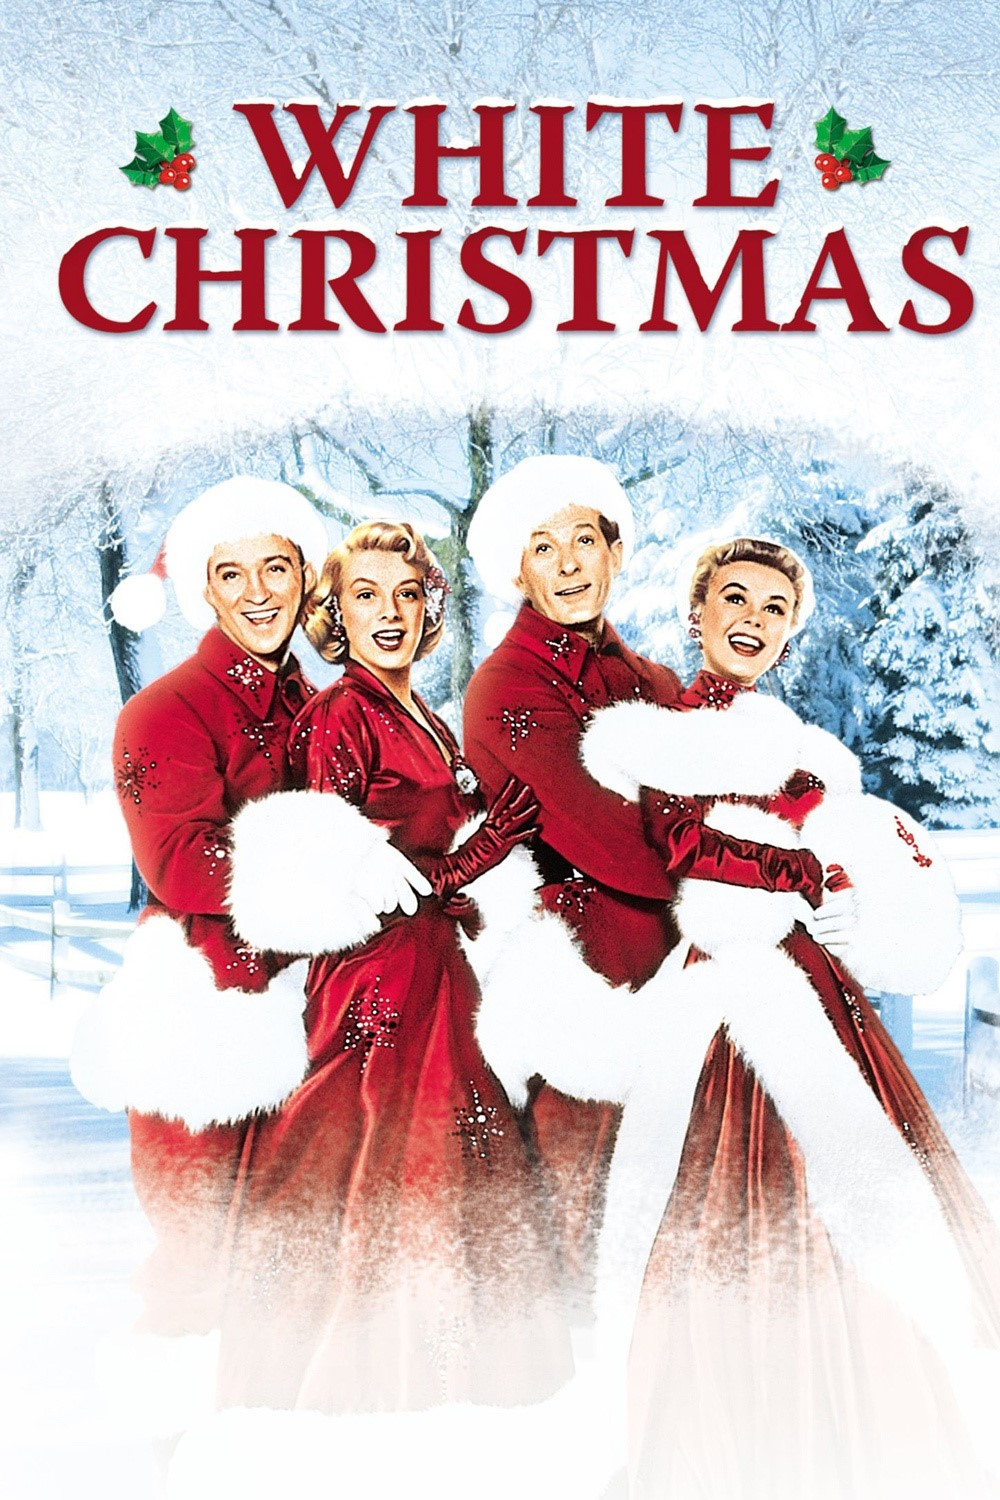 White Christmas: special show at City Screen, York